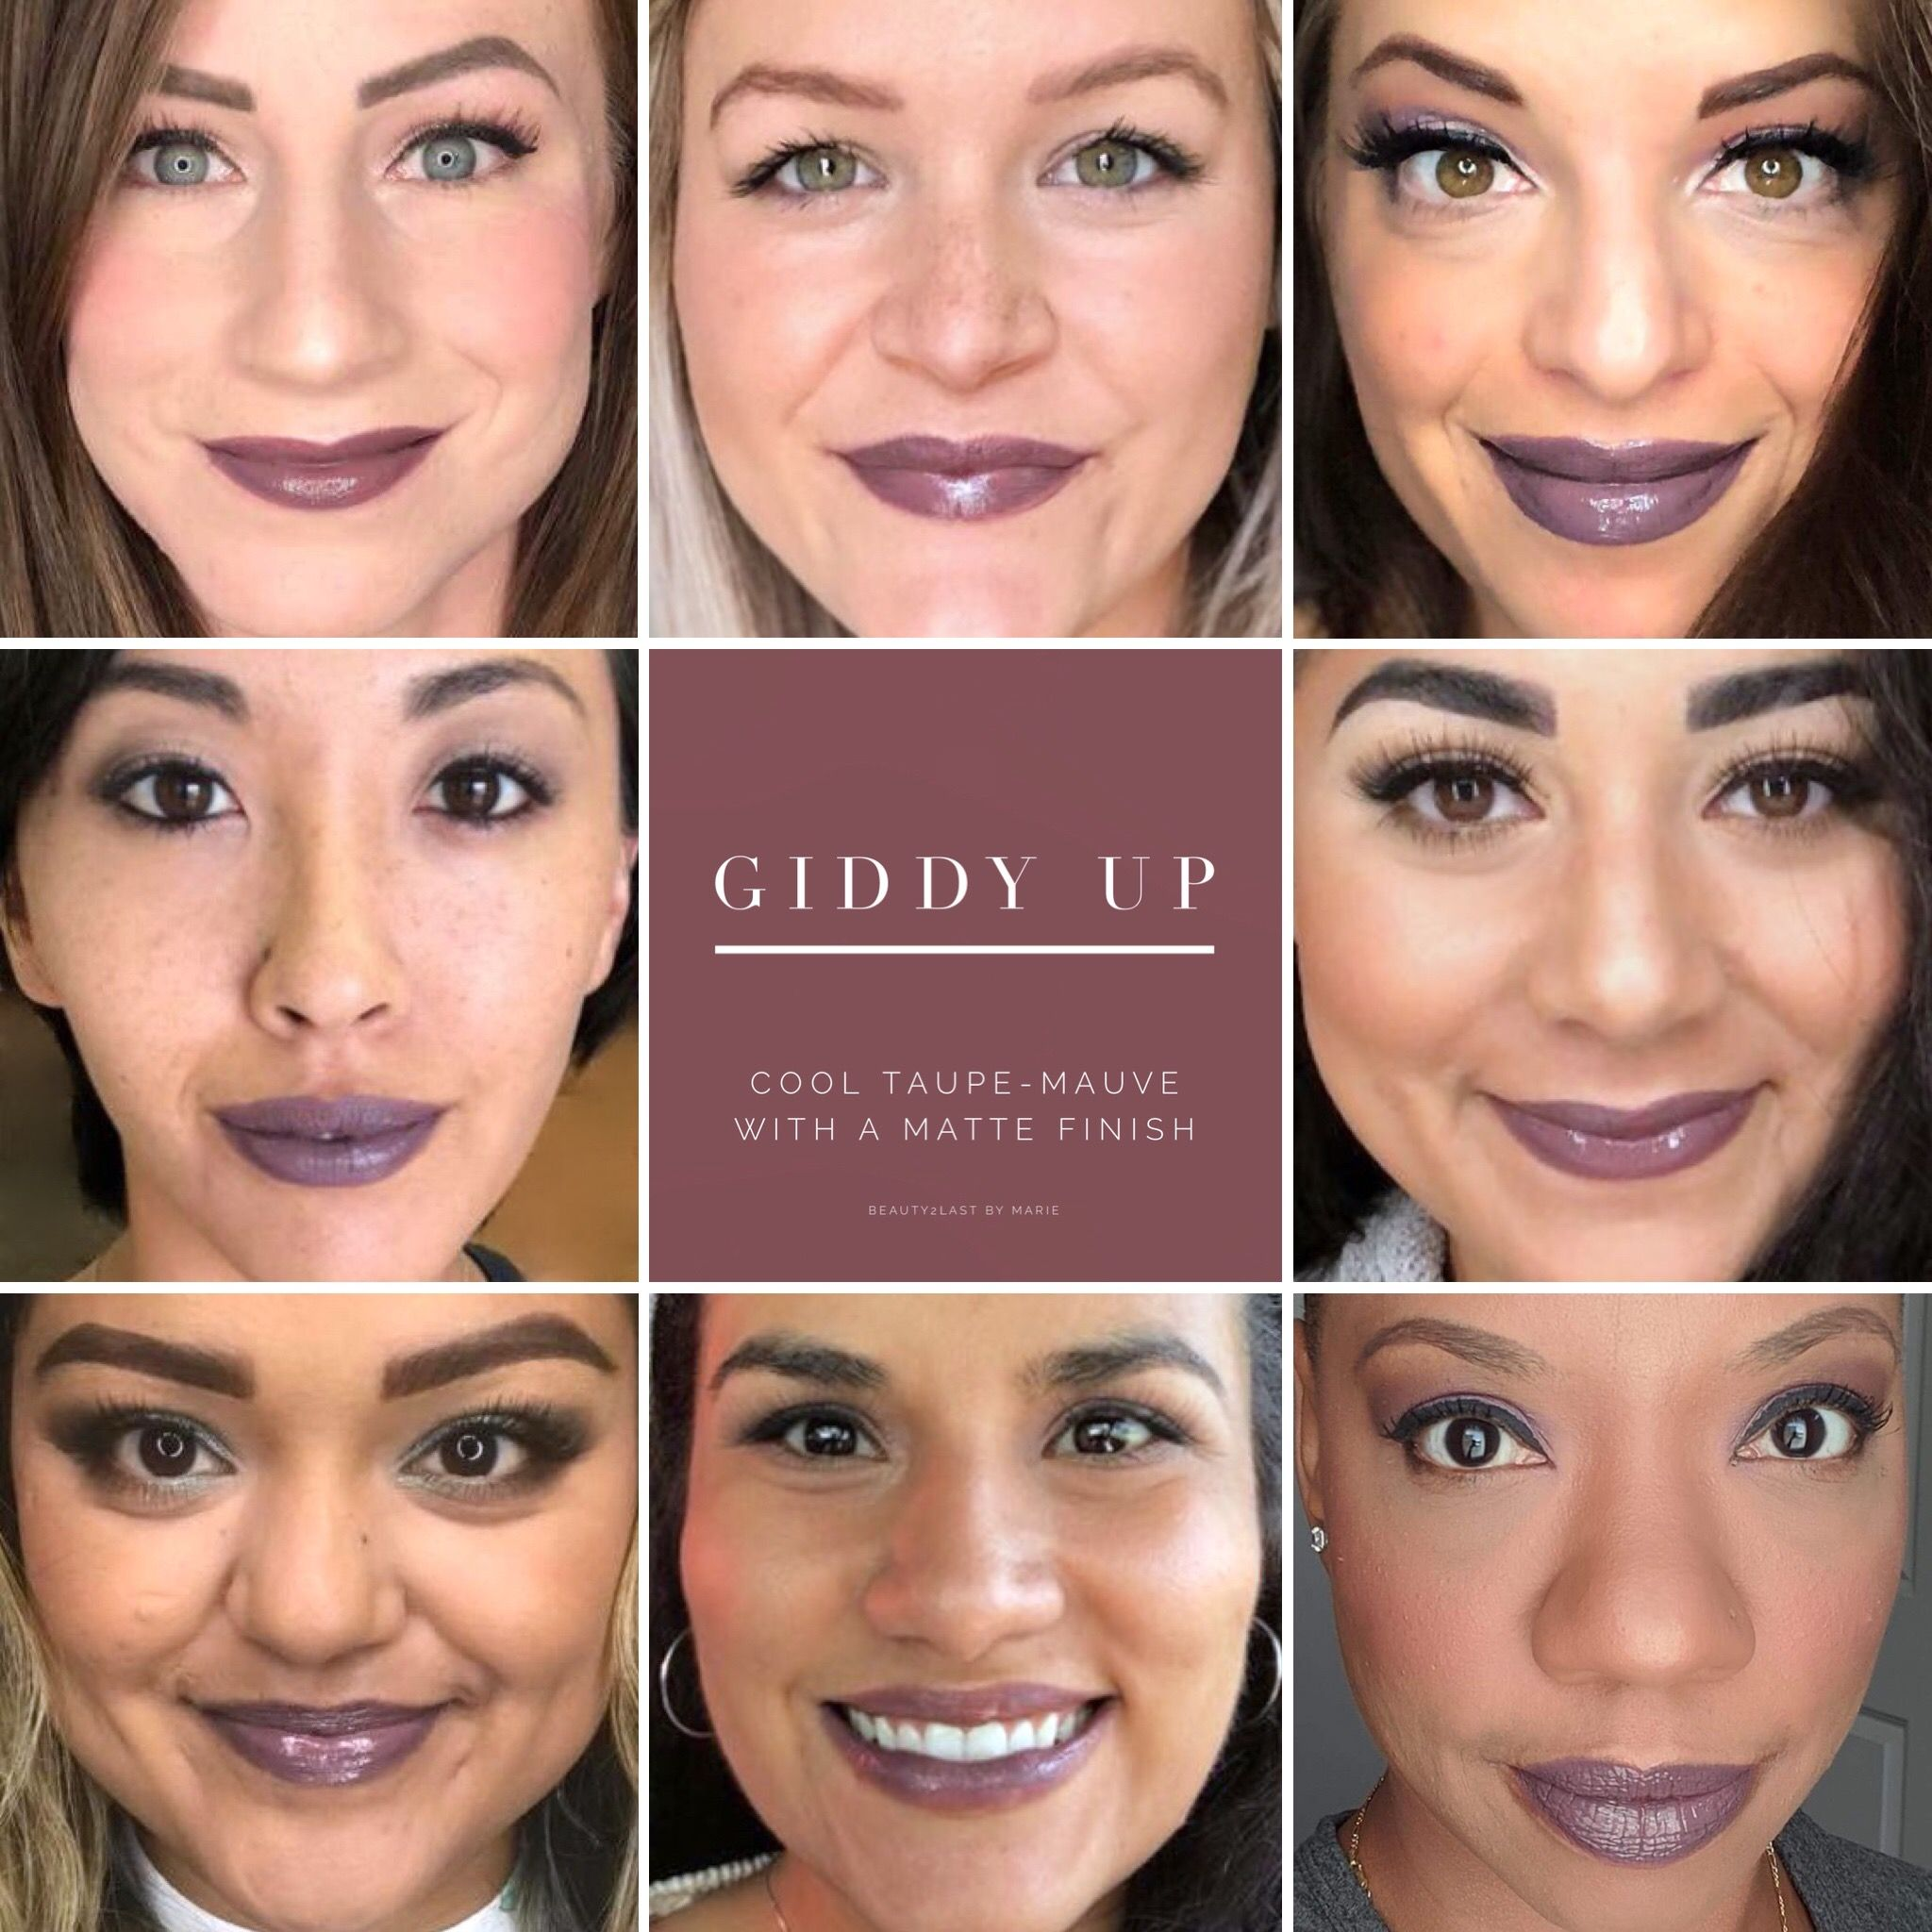 Giddy Up LipSense selfies! Giddy Up is a mauve -taupe lip color perfect for fall. LipSense is a long lasting lip color that will last 4-18 hours when worn with our gloss, and is smudge proof, budge proof, water resistant, and kiss proof!